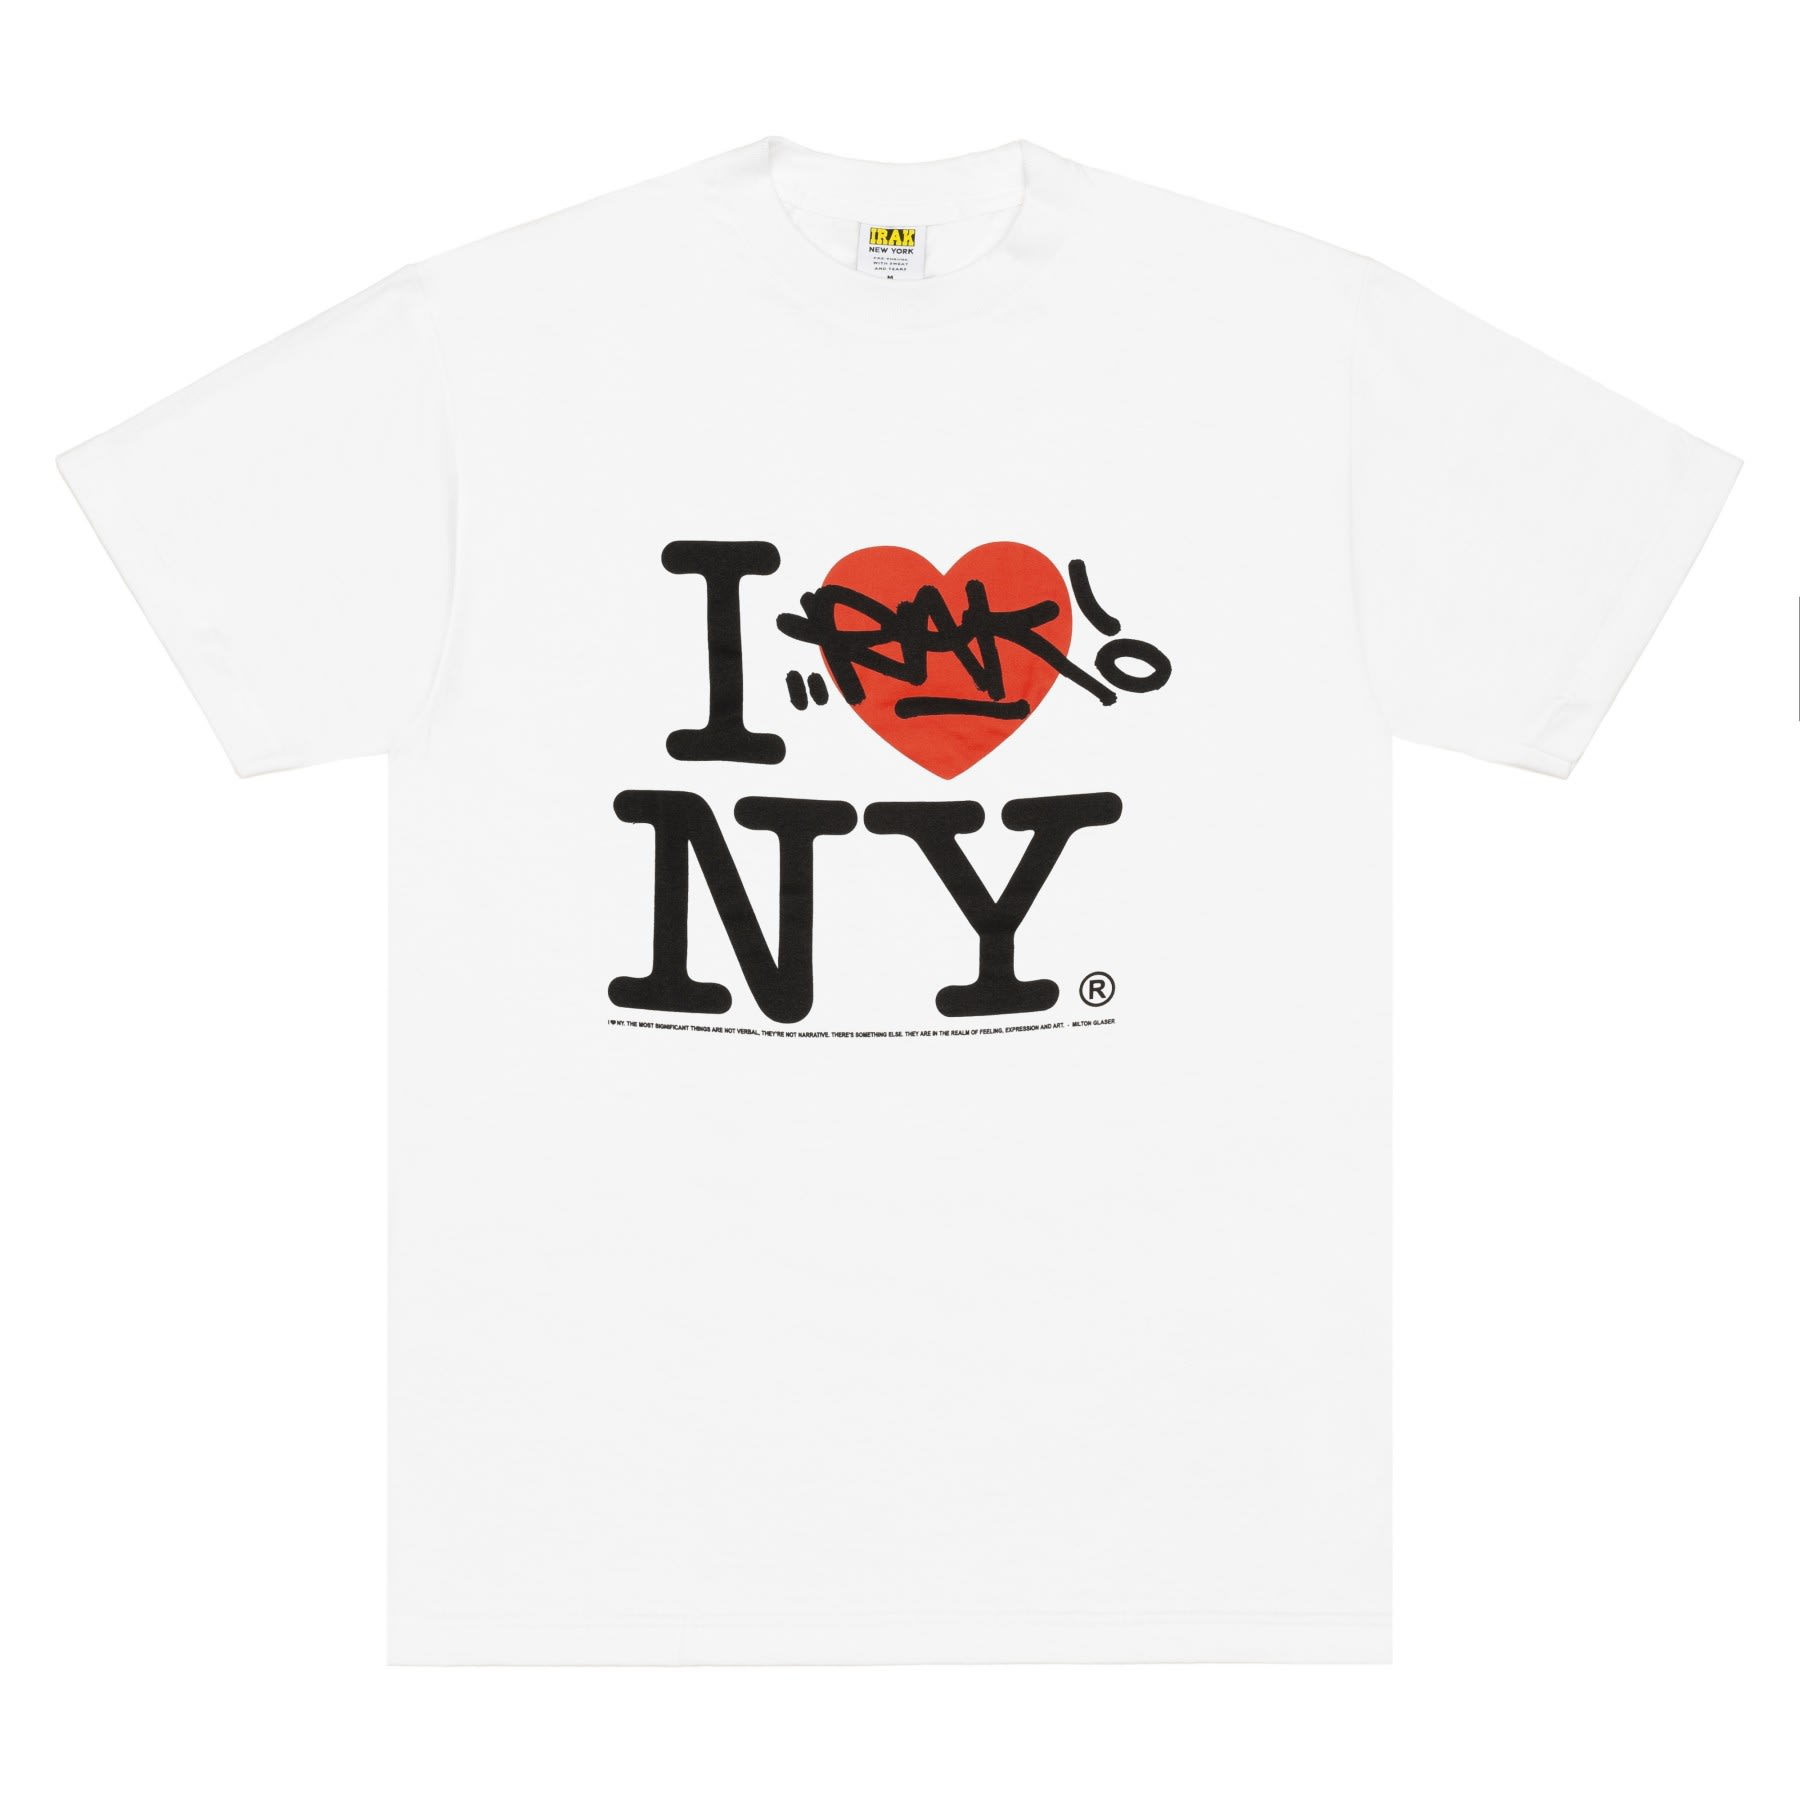 IRAK NY T-Shirt From 2019